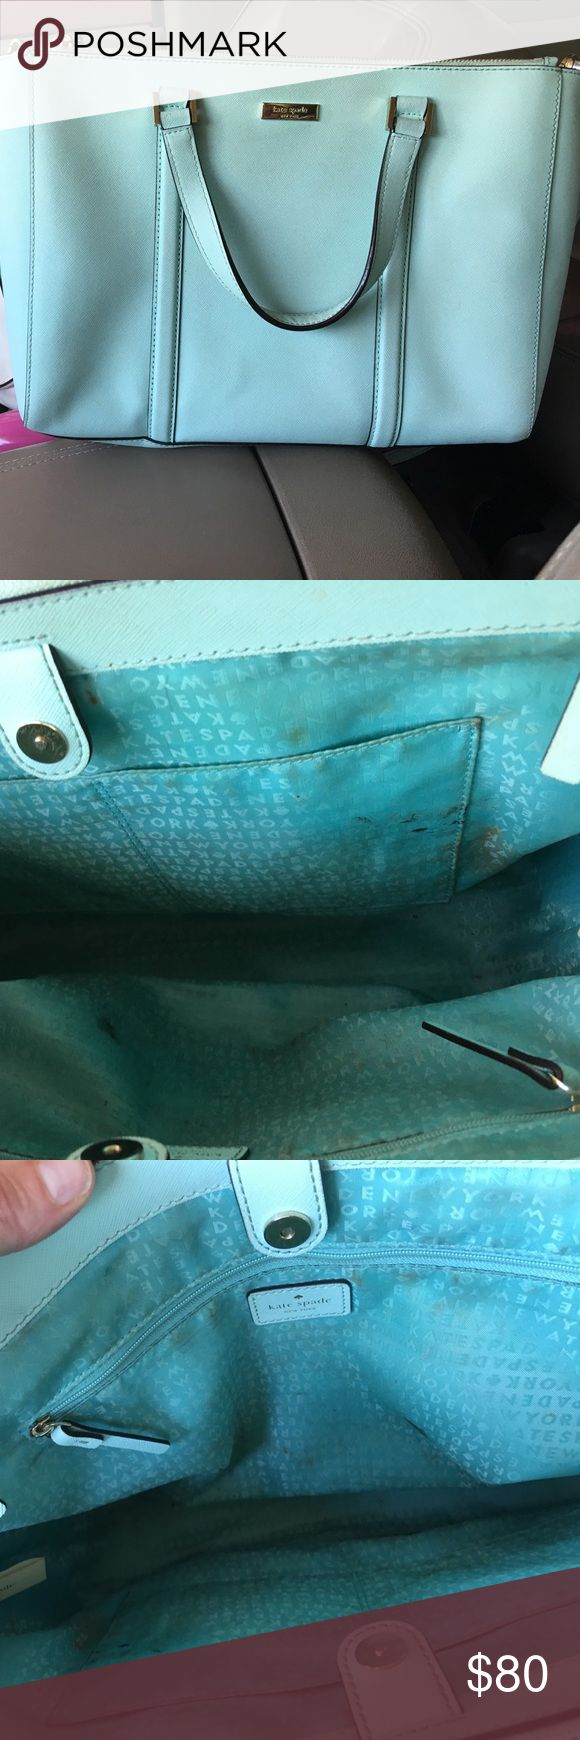 Kate Spade Handbag Briefcase size, some makeup staining on interior lining and bottom, otherwise great shape. Could be a perfect diaper bad, too! kate spade Bags Totes